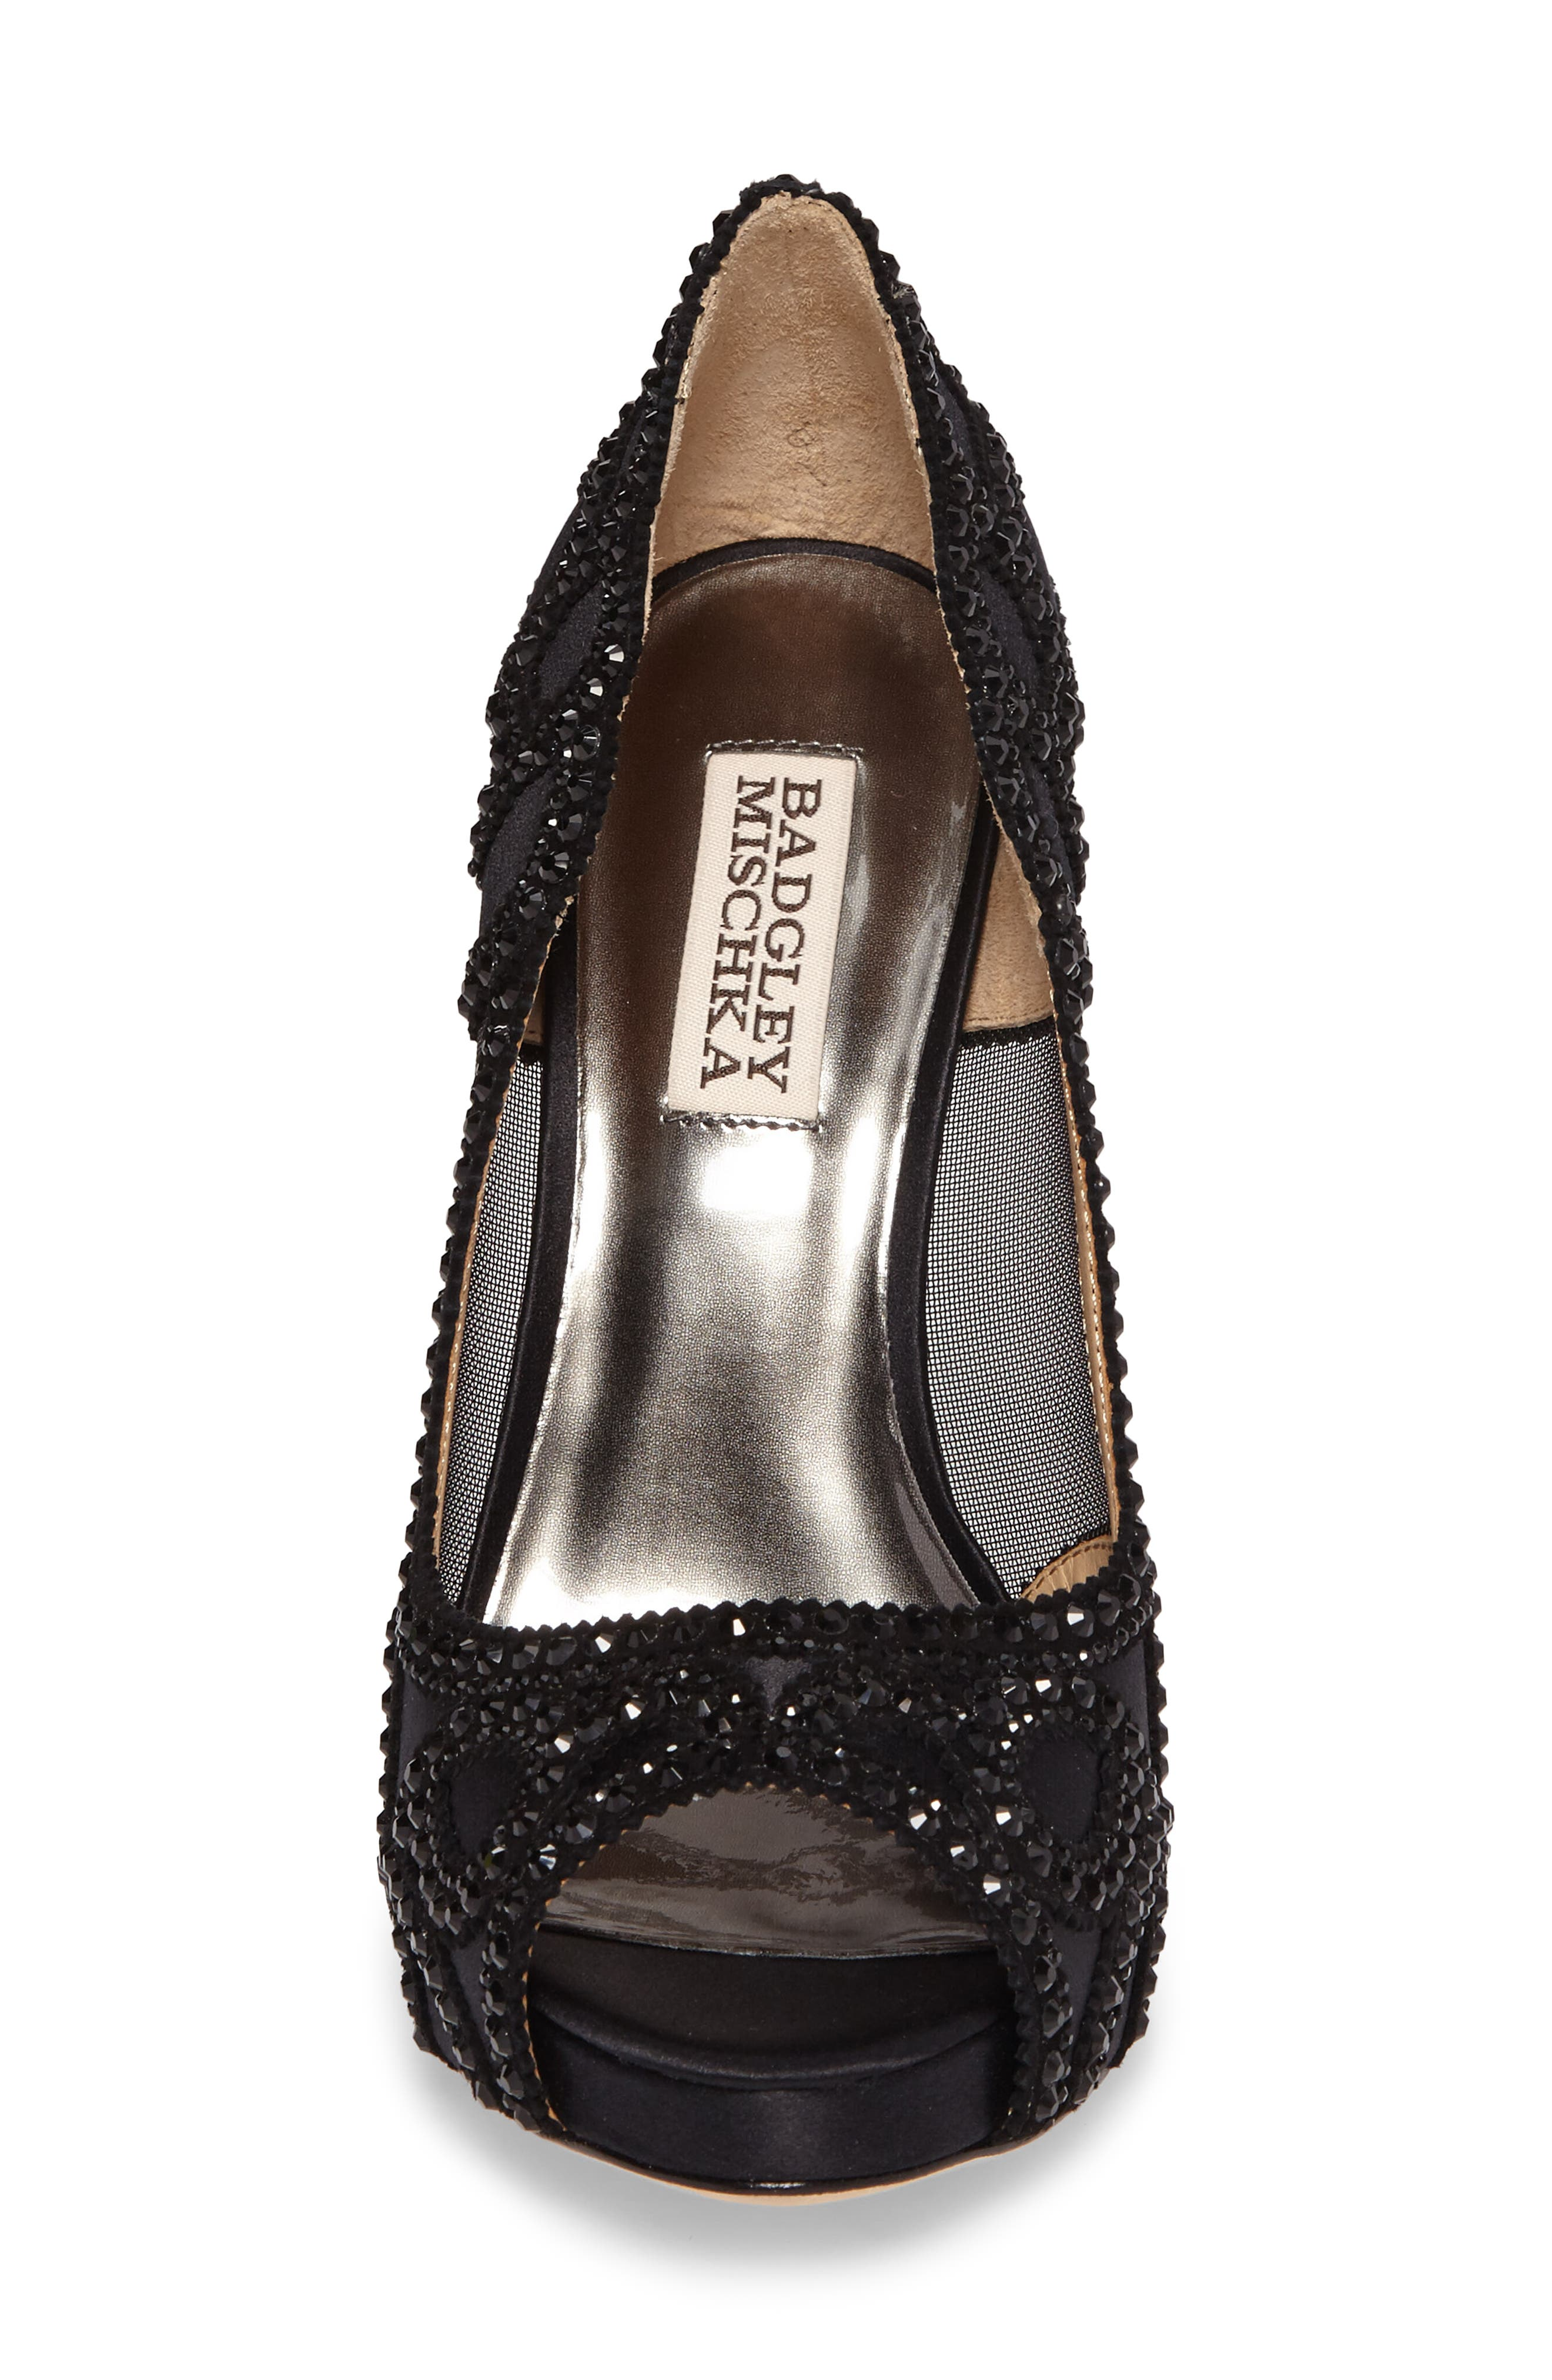 Witney Embellished Peep Toe Pump,                             Alternate thumbnail 4, color,                             Black Satin